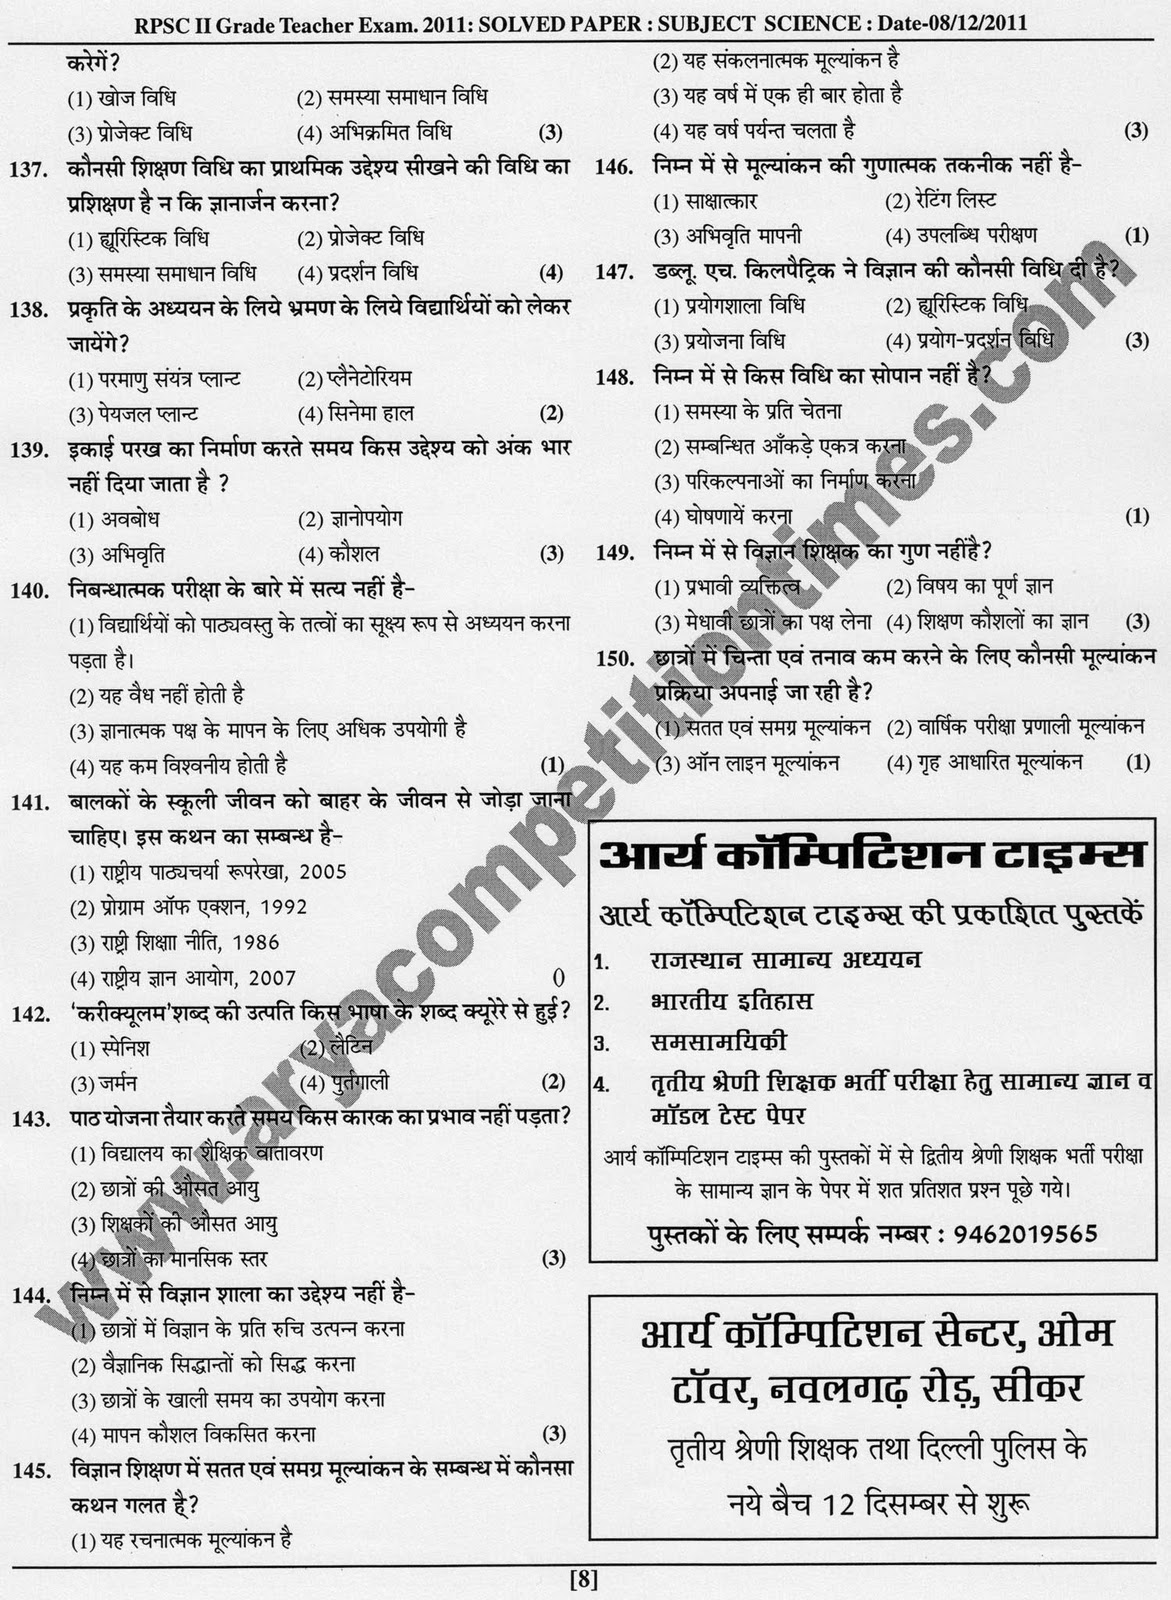 RPSC 2nd Grade Science Answer Key Solution 2011